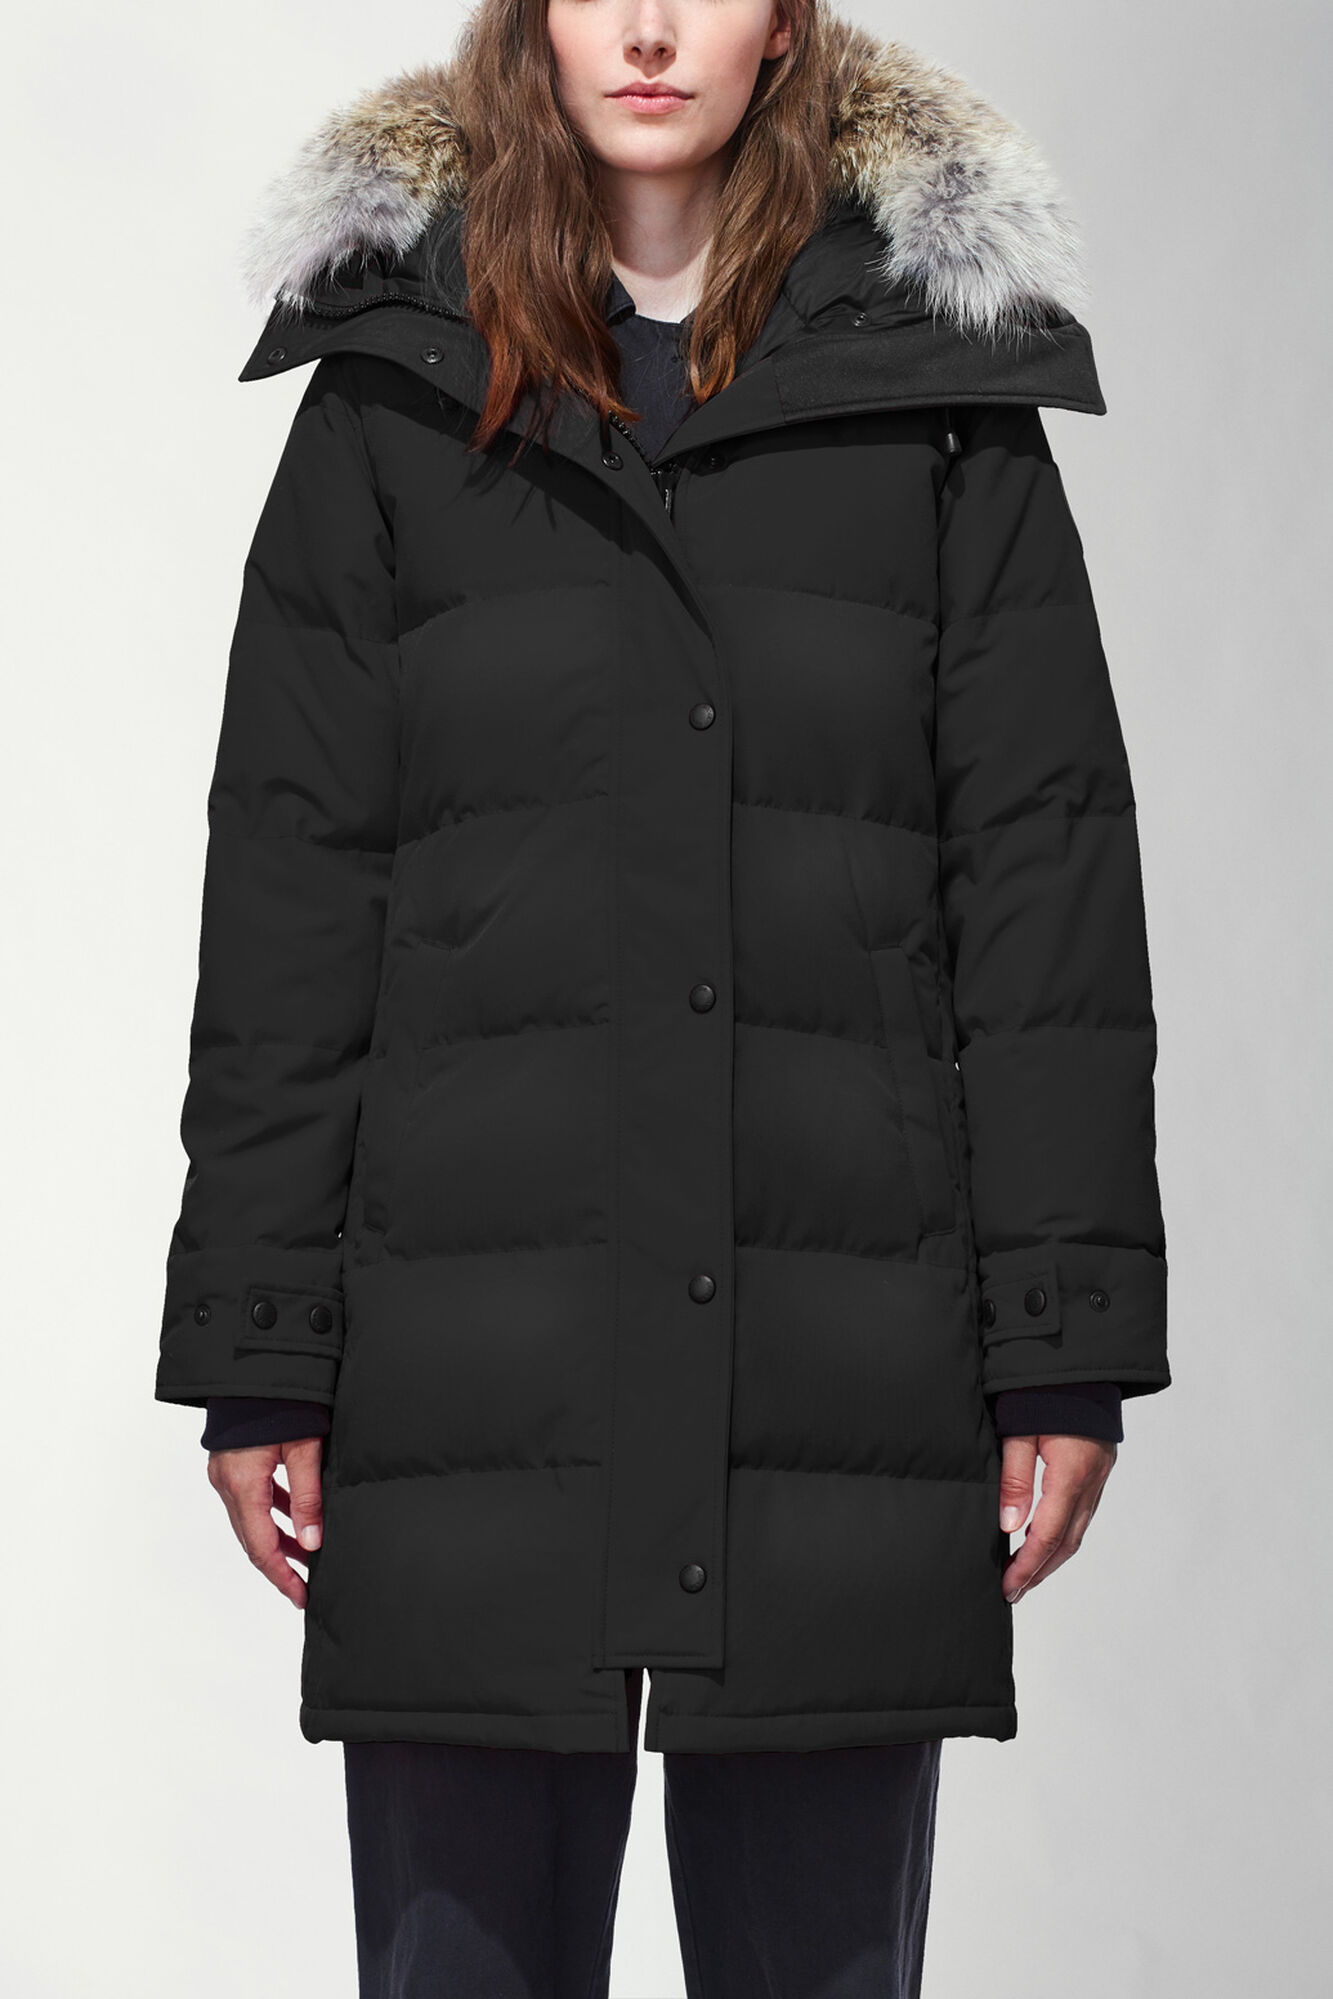 where to buy canada goose jackets in kitchener waterloo